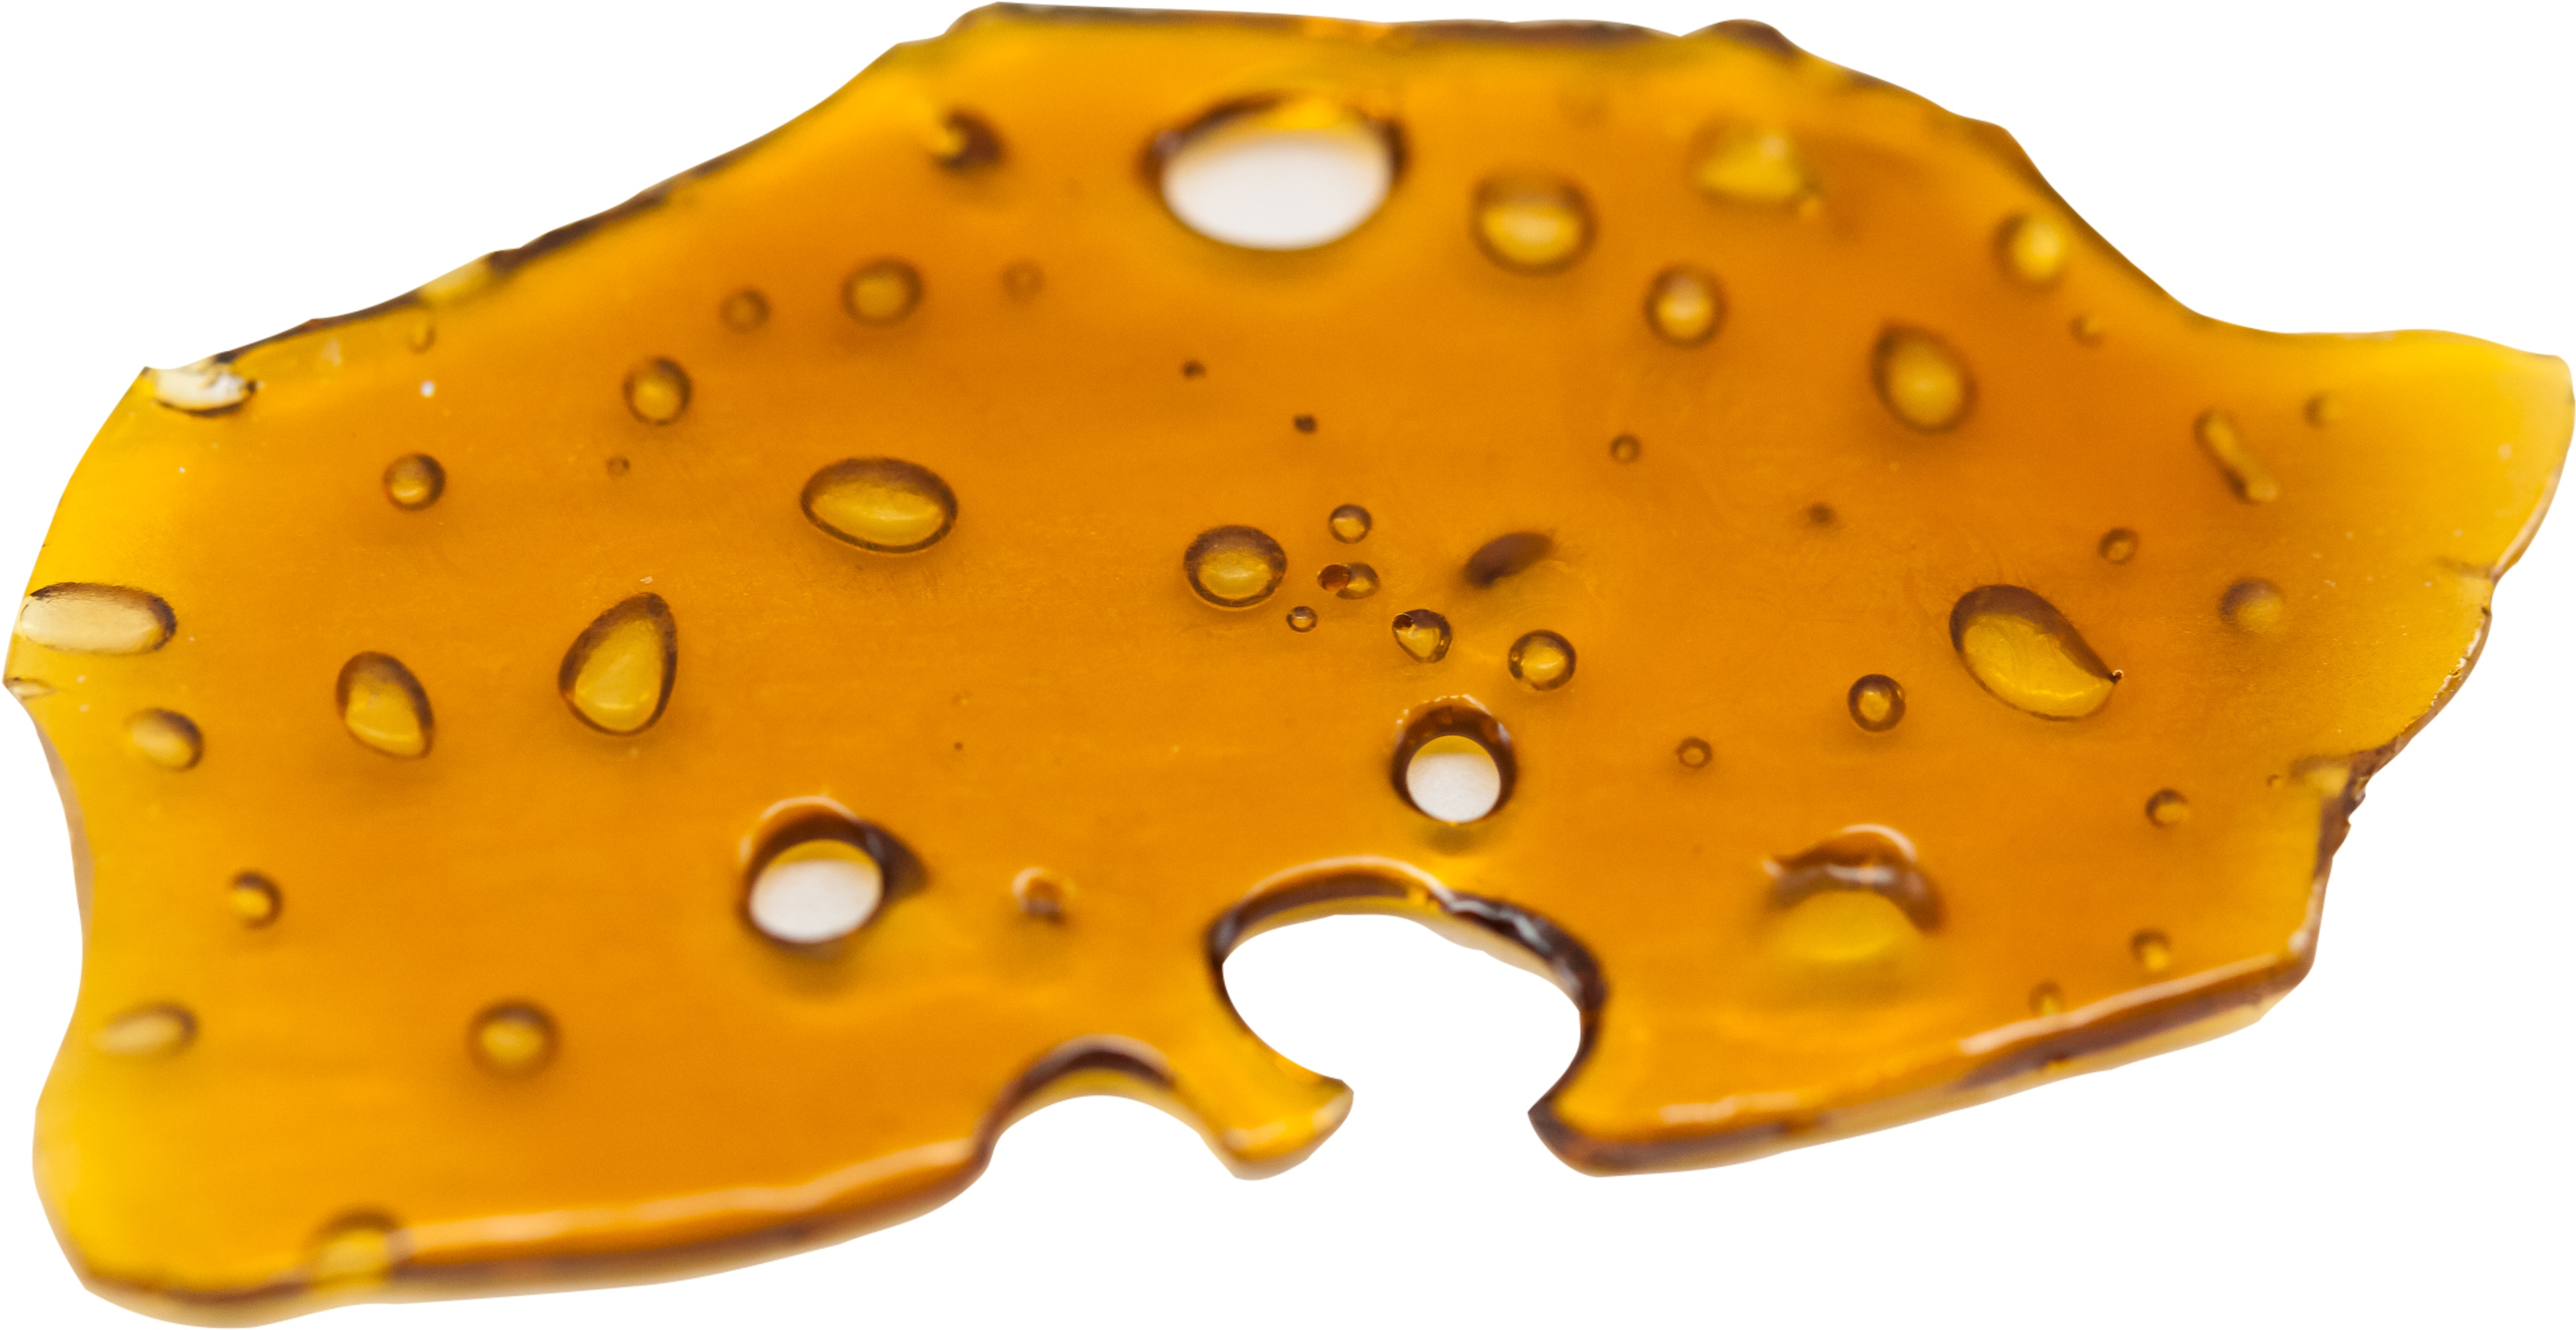 Juice Box Shatter Concentrate Shatter